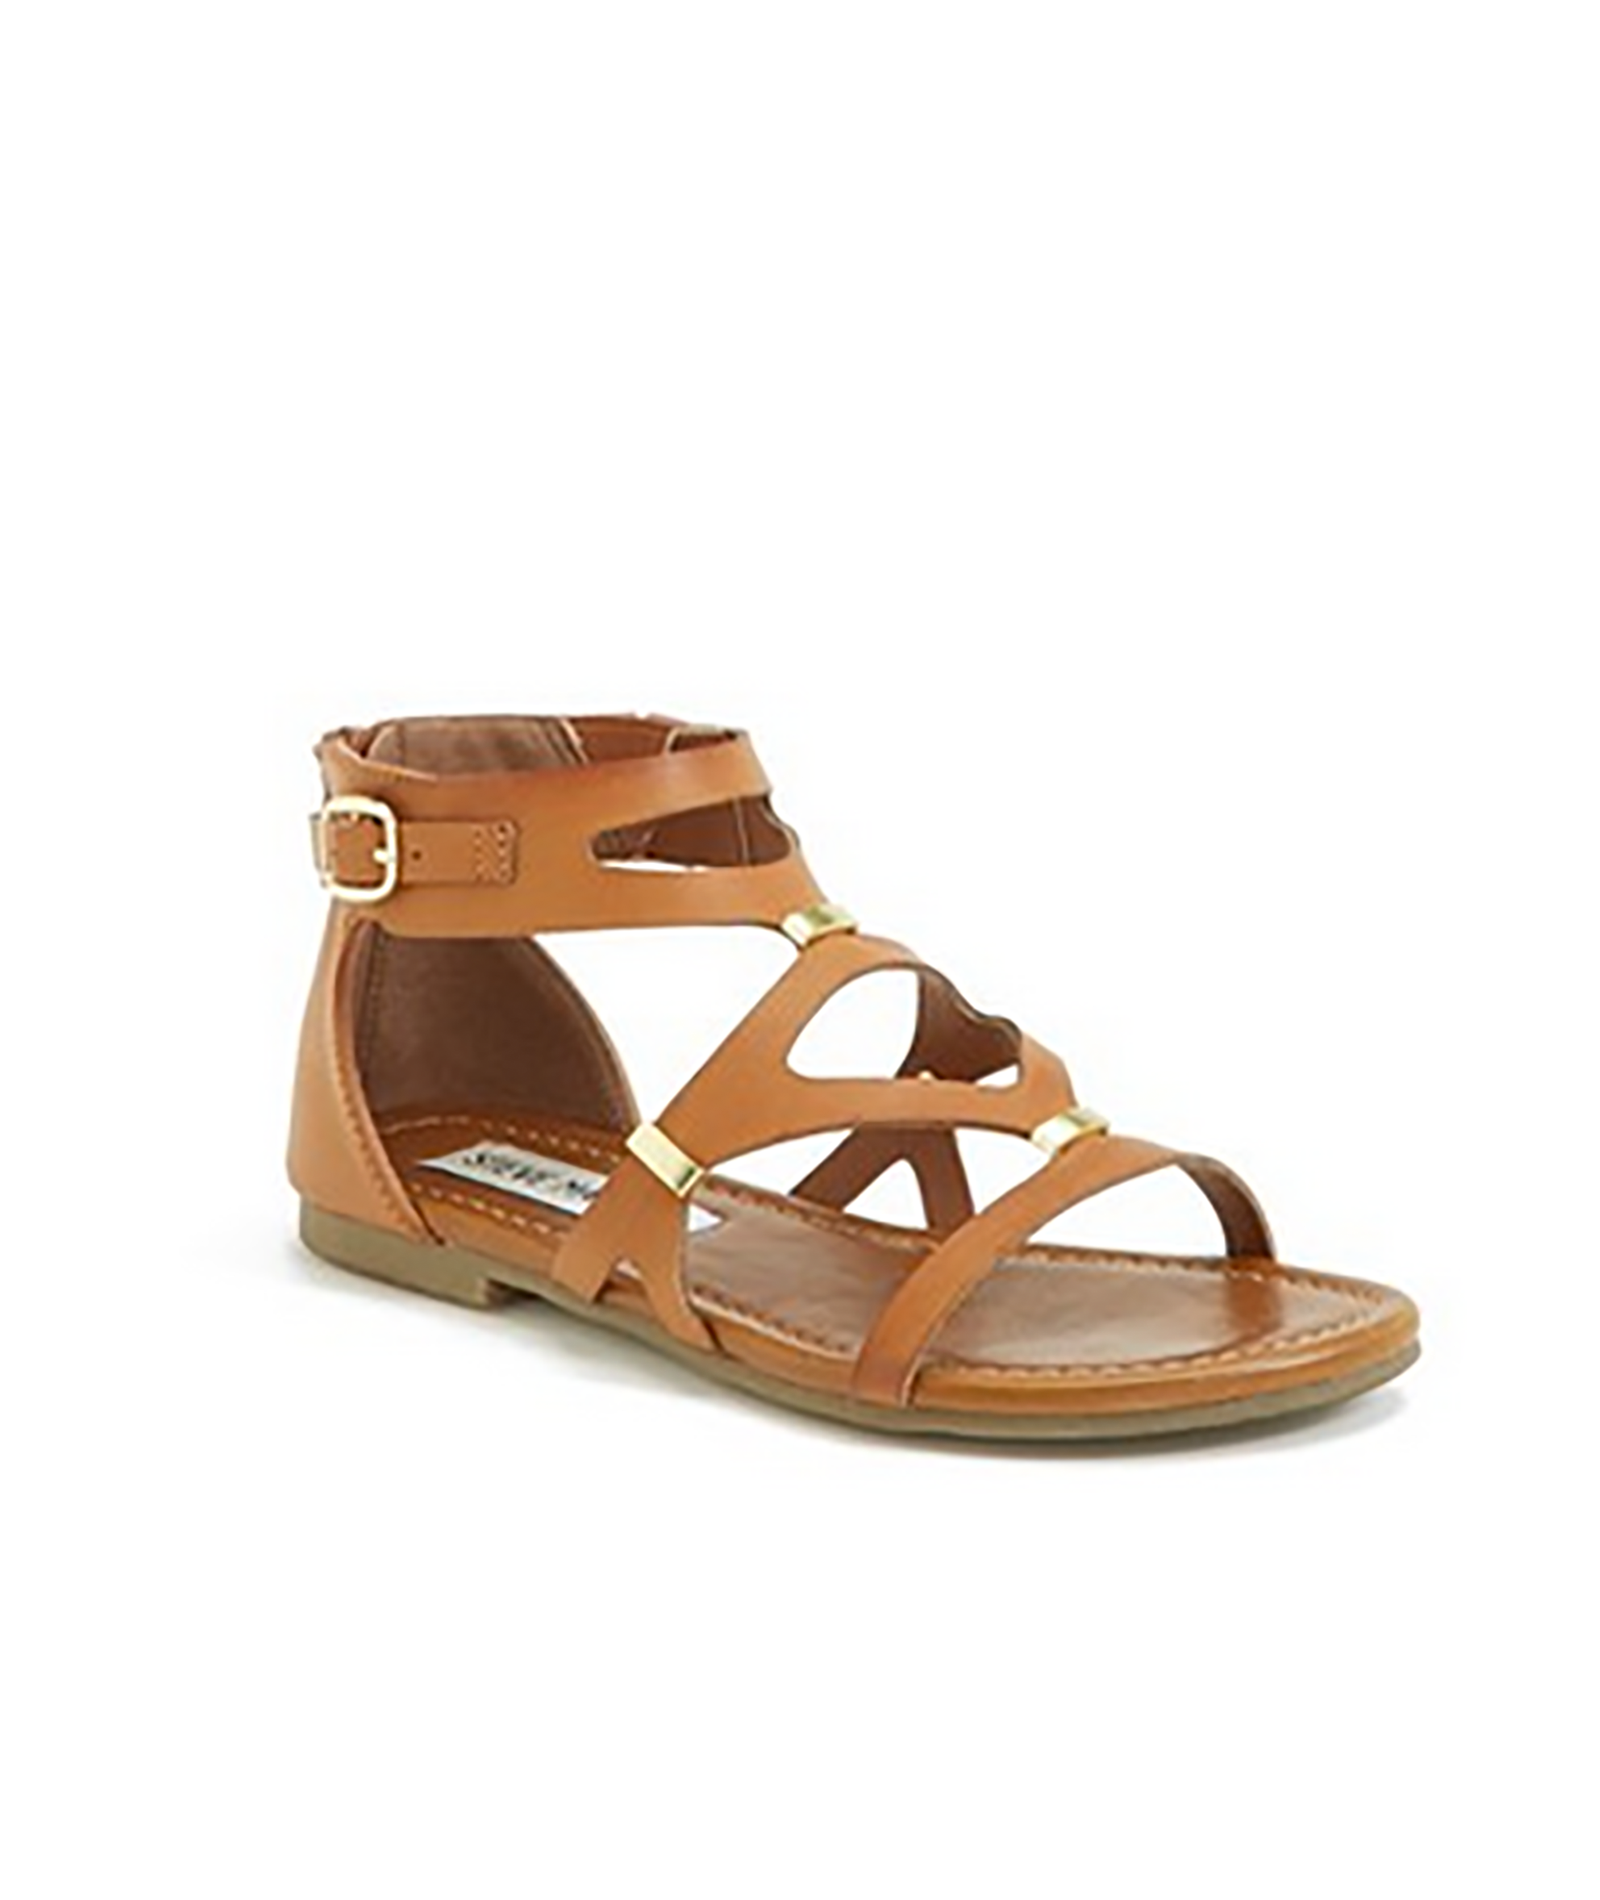 Steve Madden Girls Comma Sandal